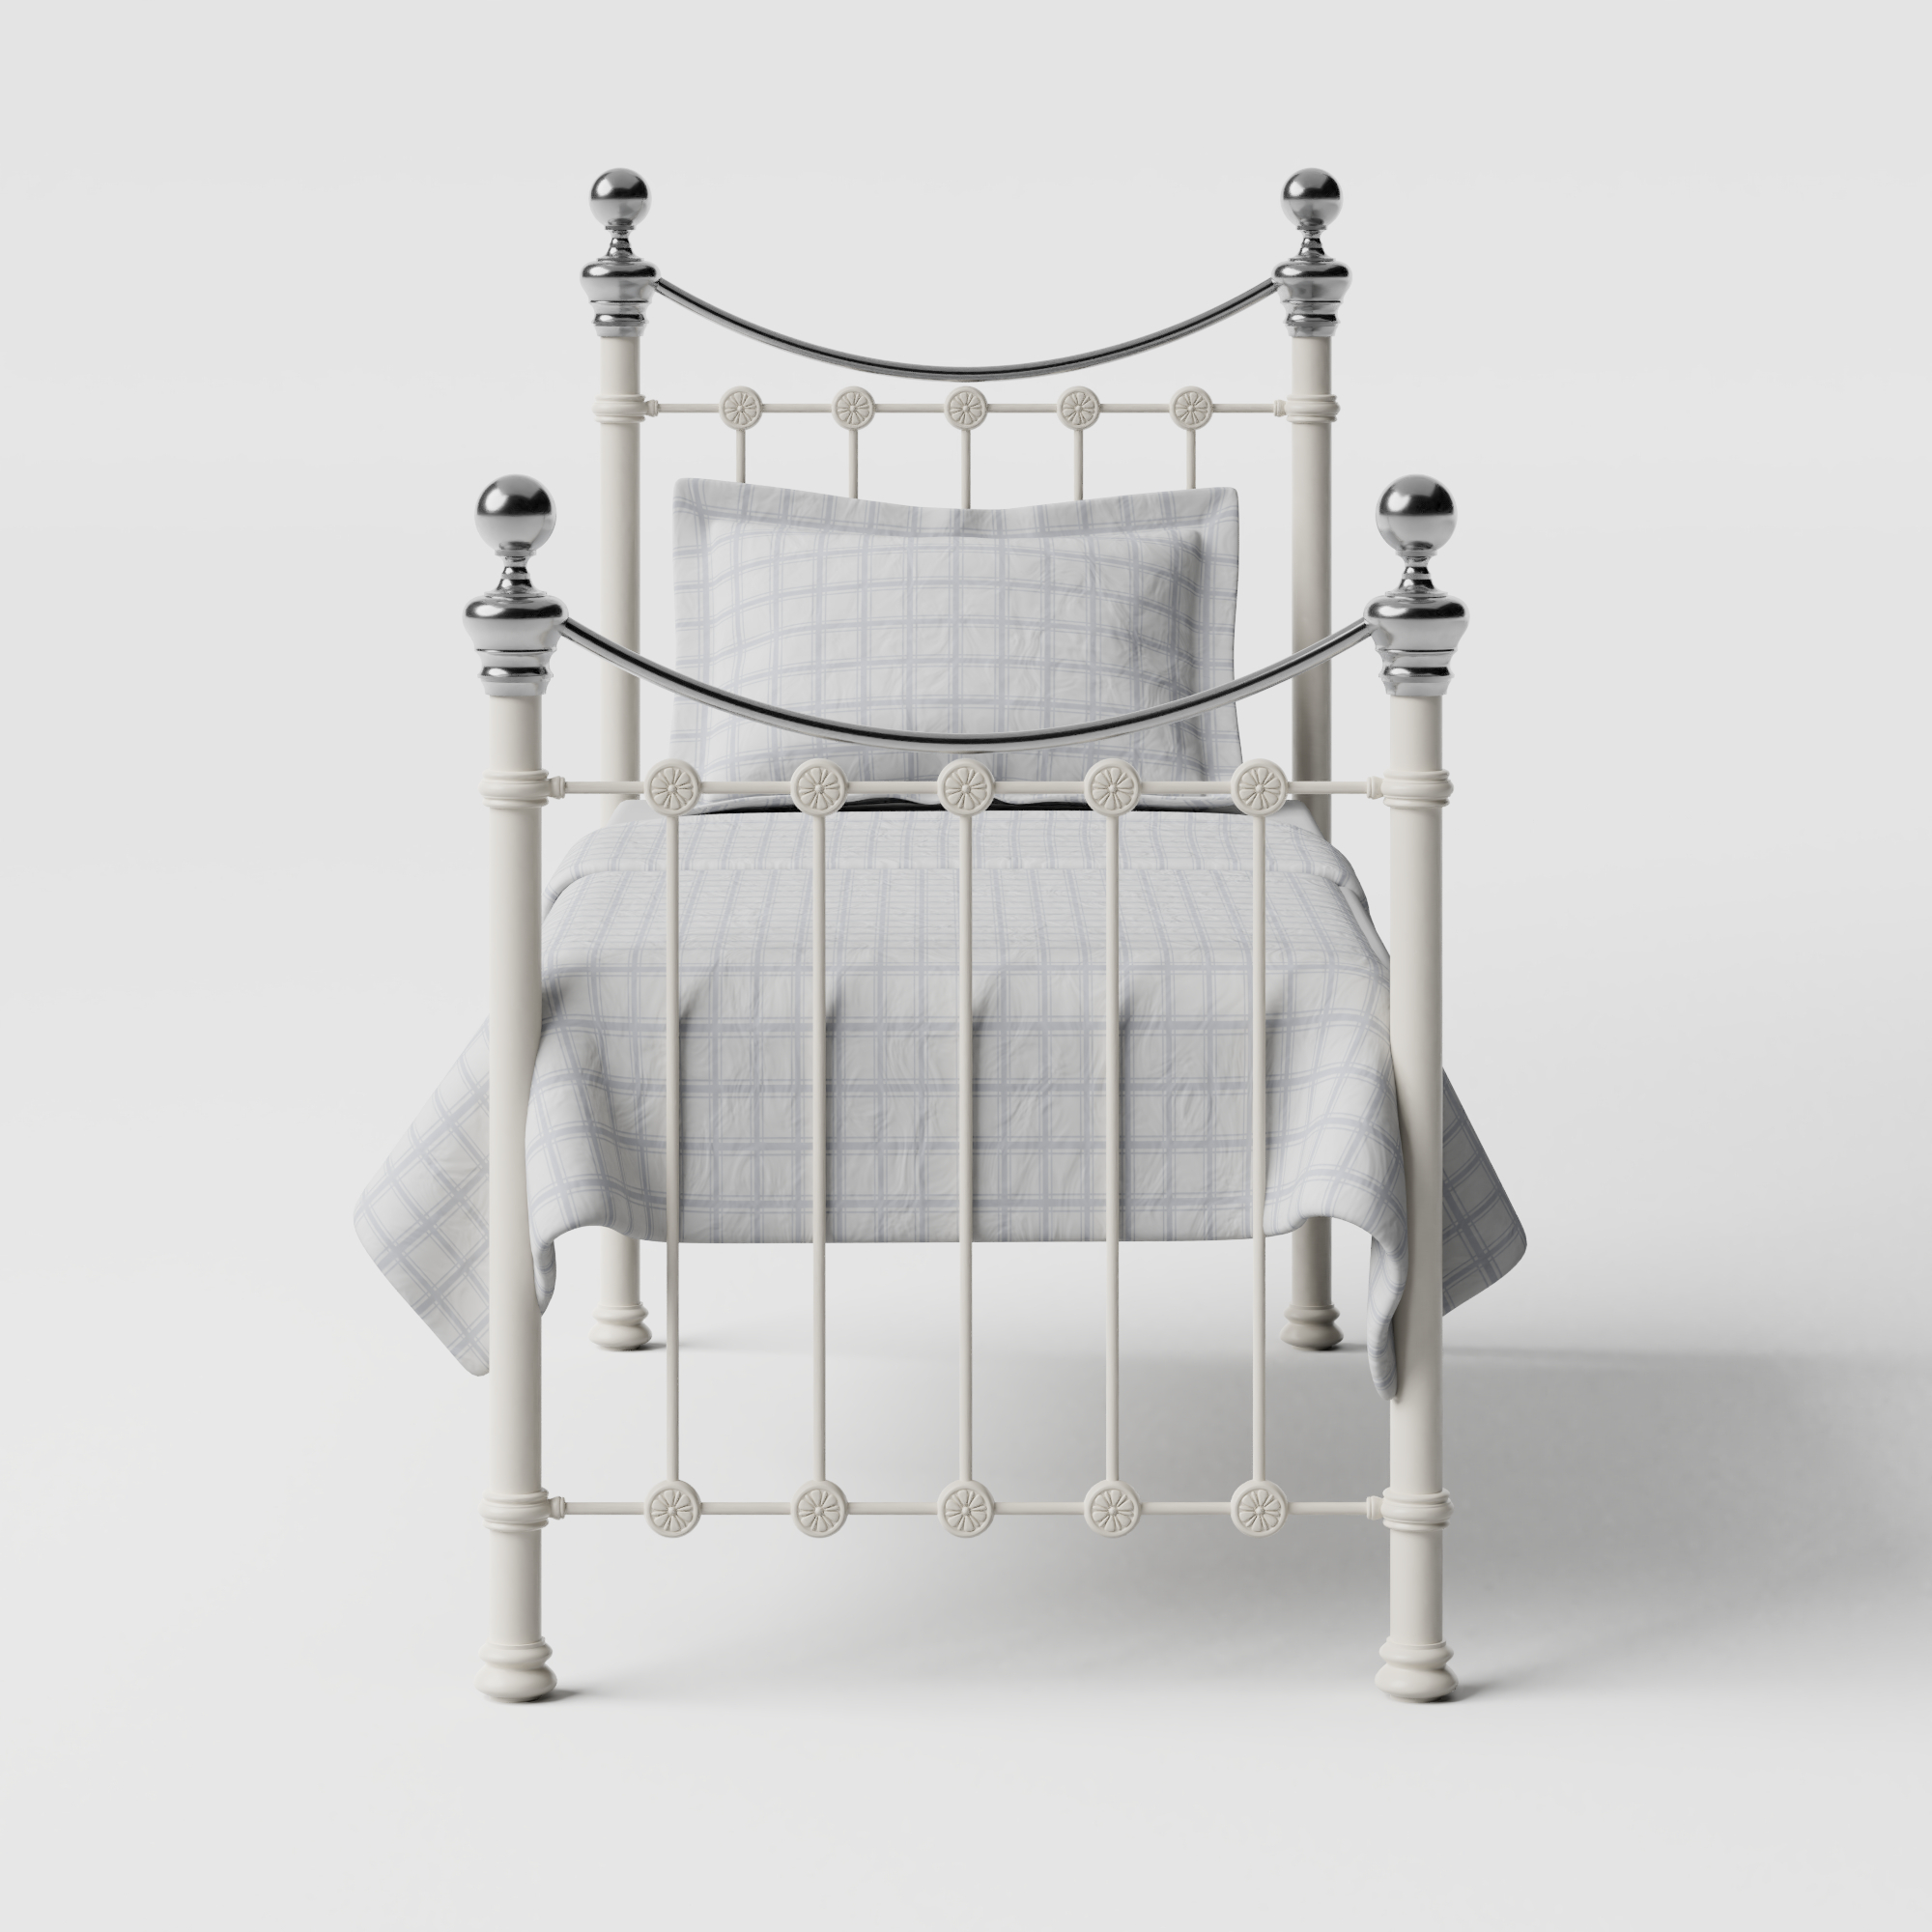 Selkirk Chromo iron/metal single bed in ivory